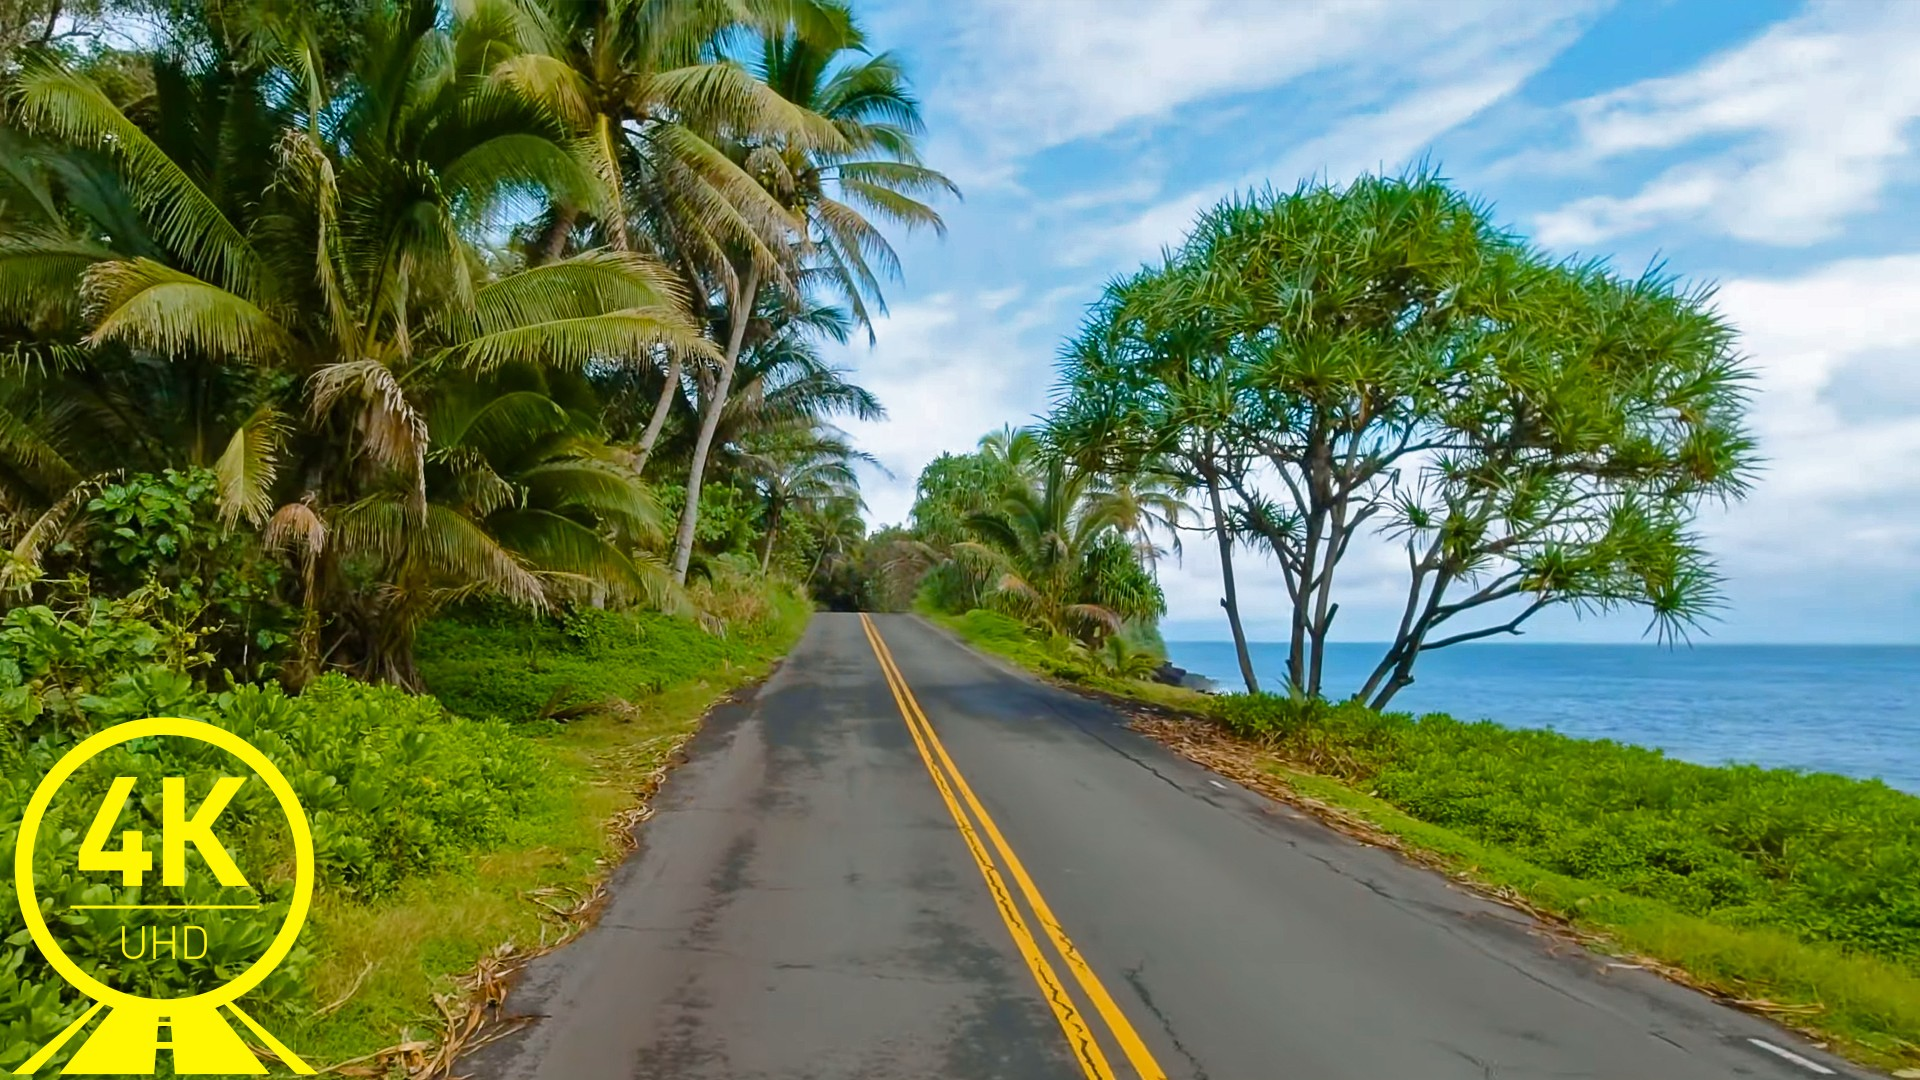 Hawaii Roads front 9 Scenic drive video